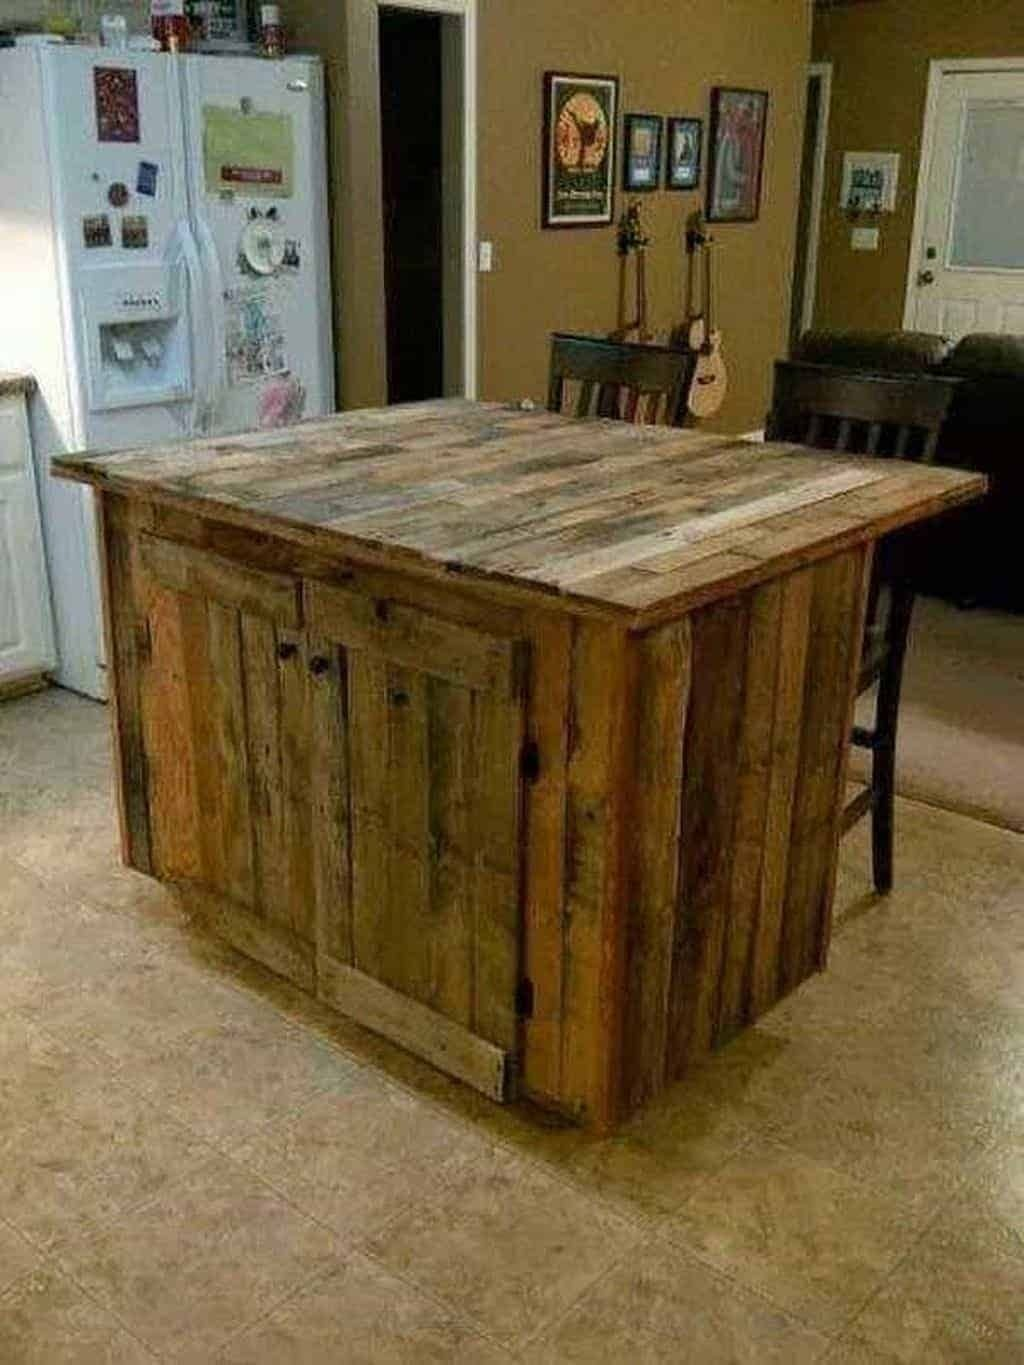 Incroyable Kitchen Table With Storage Underneath